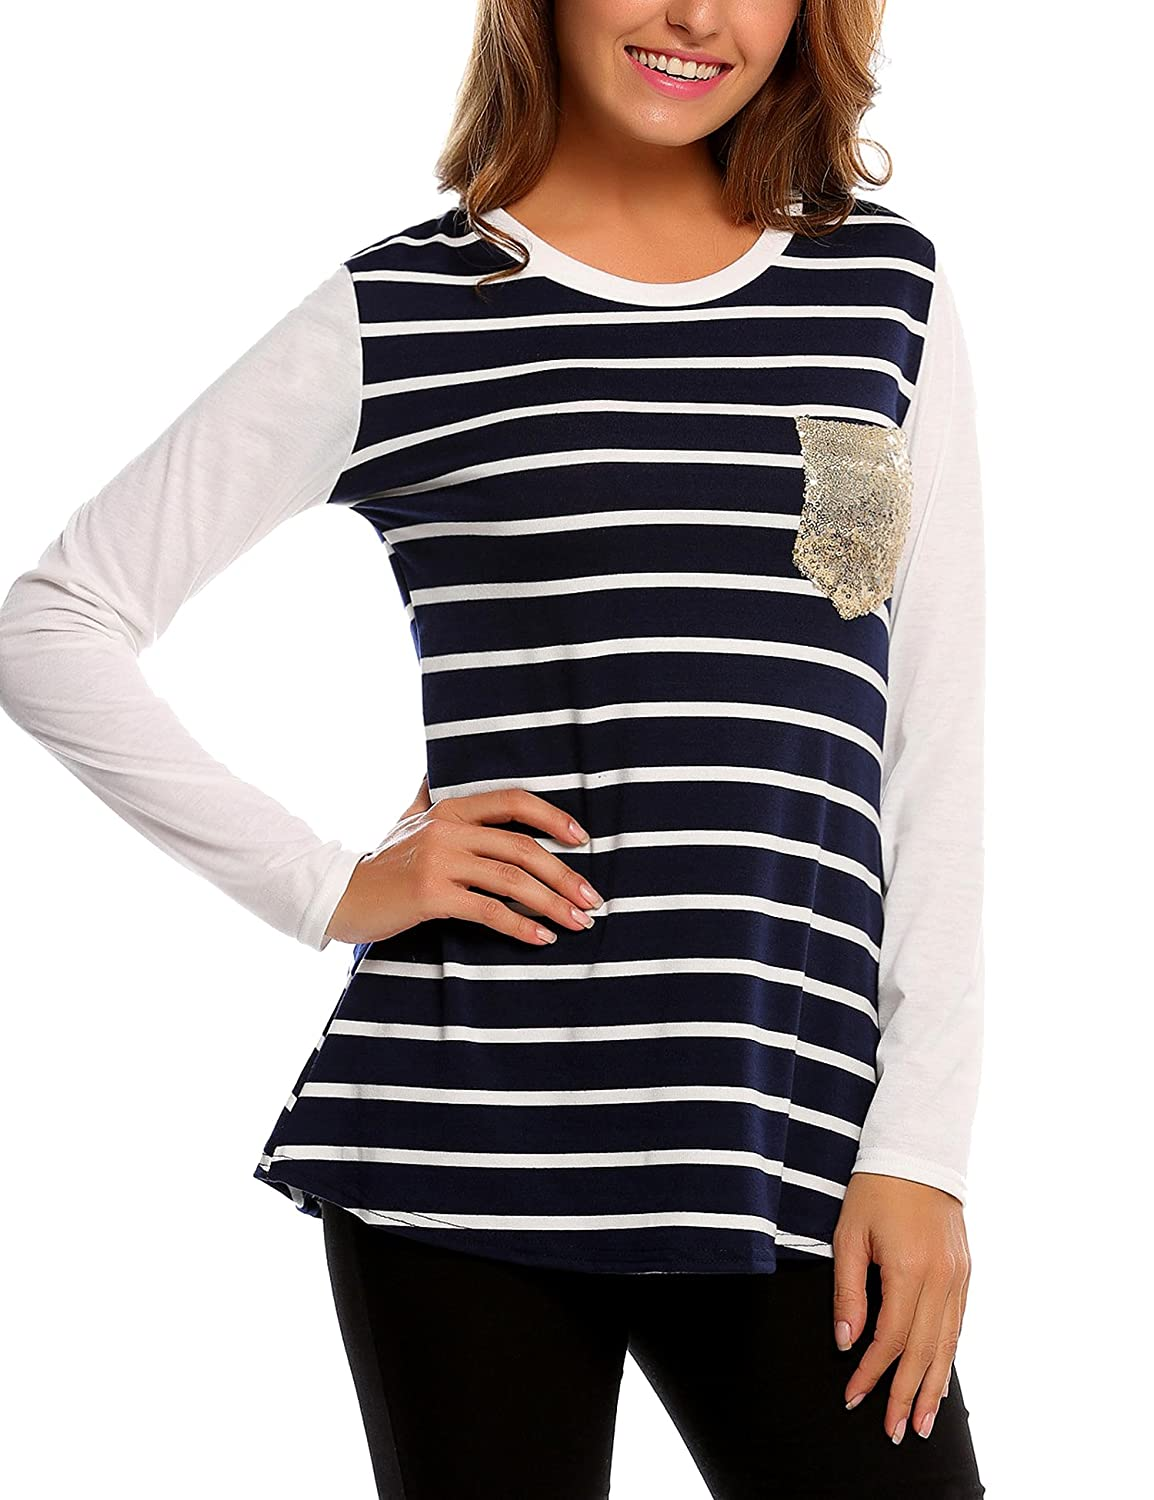 8691d2db ☆Easther Women's Scoop Neck Striped Casual Loose Long Sleeve Blouse Tops Tee  Shirt with Pocket. ☆Unique Style: This flattering loose style top features  ...